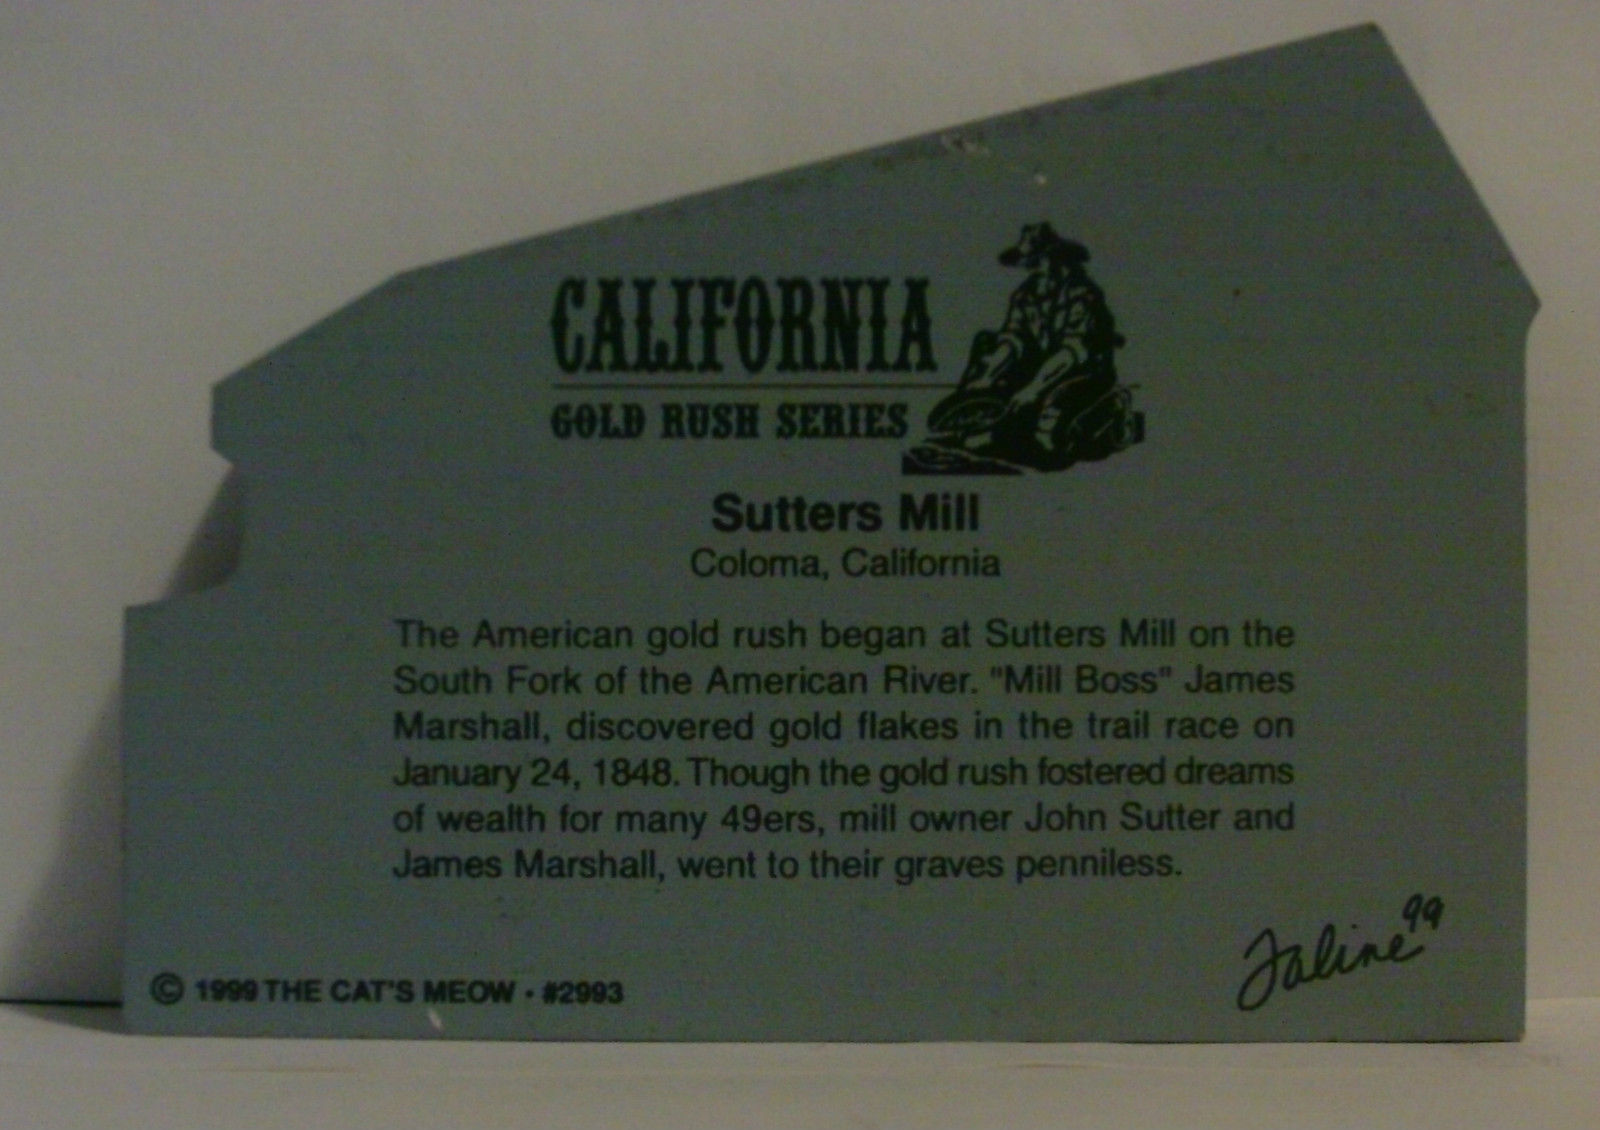 The Cats Meow Meow 1999 California Gold Rush Series Sutters Mill image 2